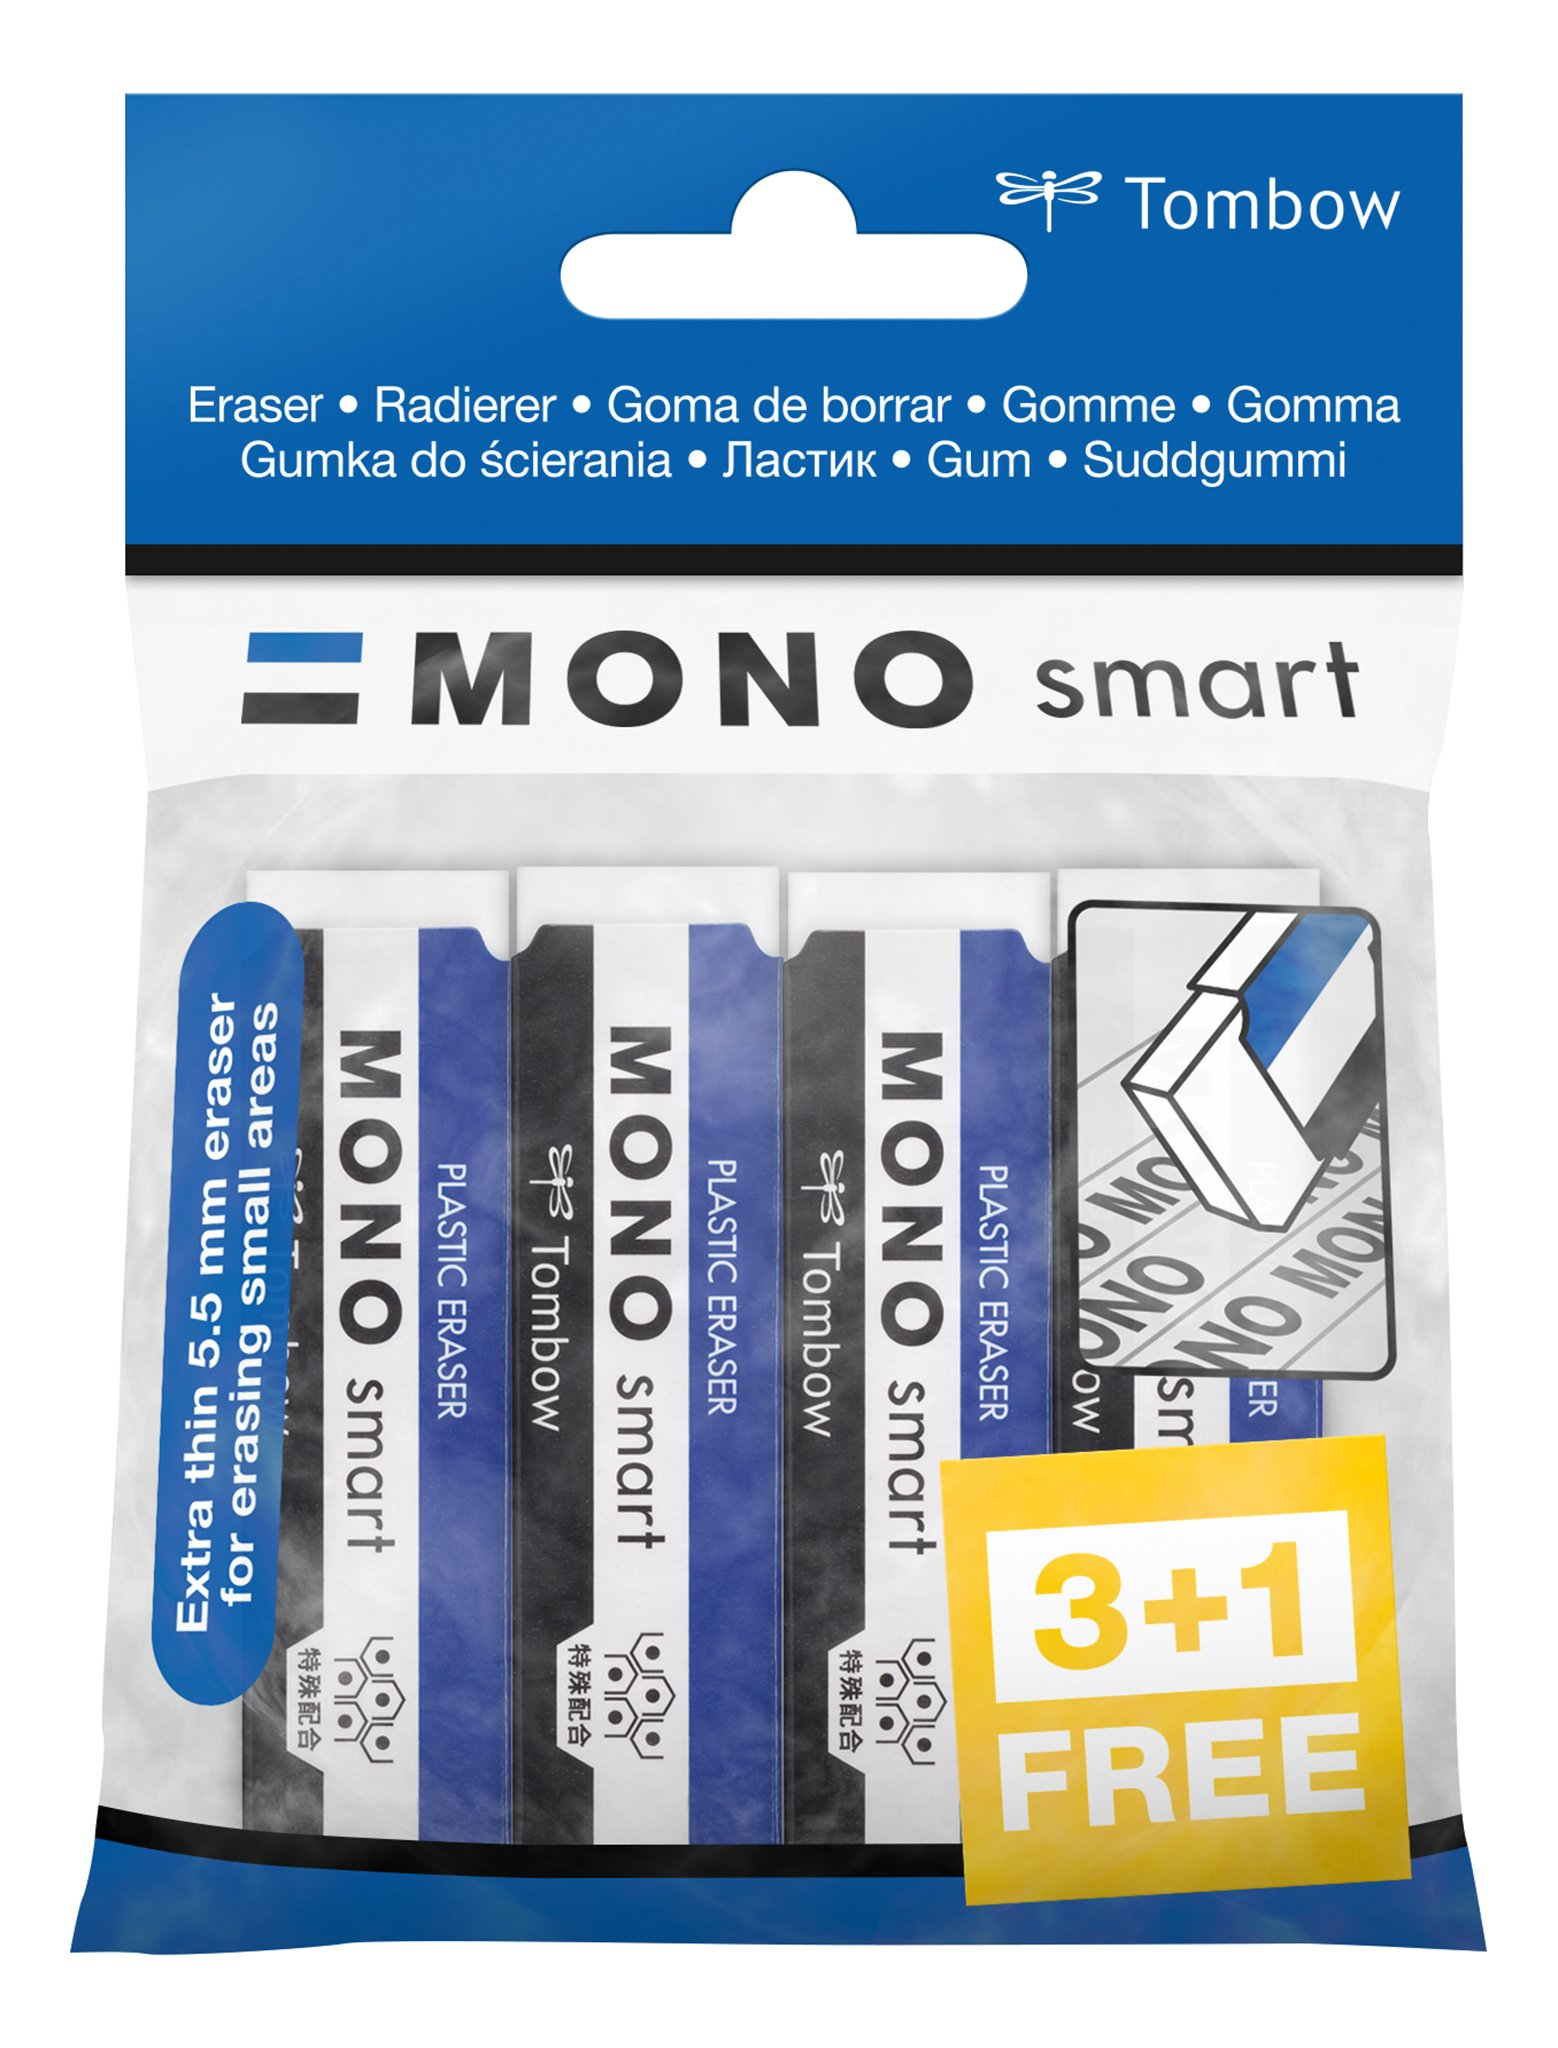 Tombow ET-ST-4P Rubber Mono Smart, for Precision Erasing, 9 g, Pack of 4